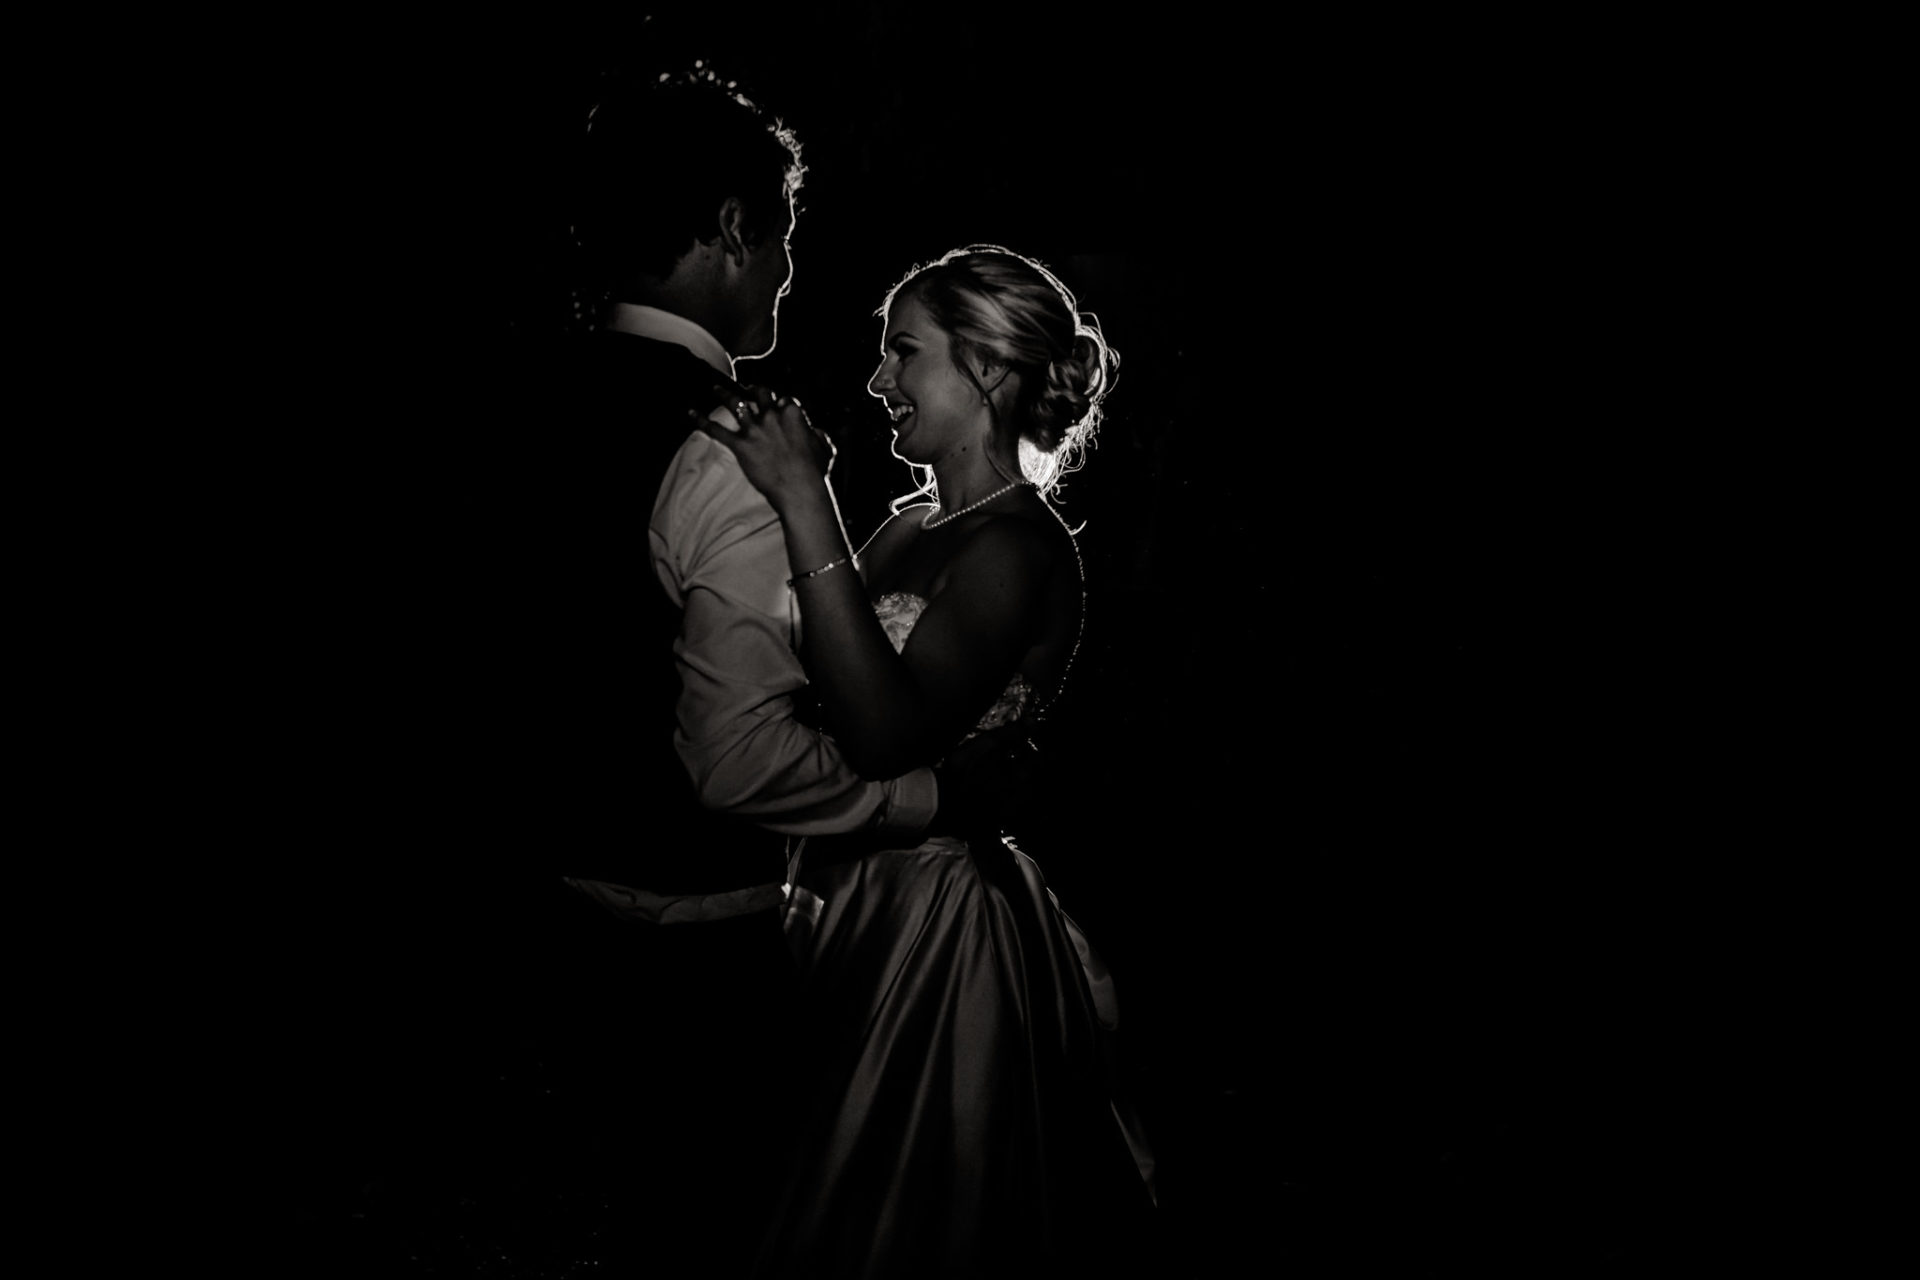 backyard-wedding-australia-melbourne-bride-night-portrait-bride-and-groom-first-dance